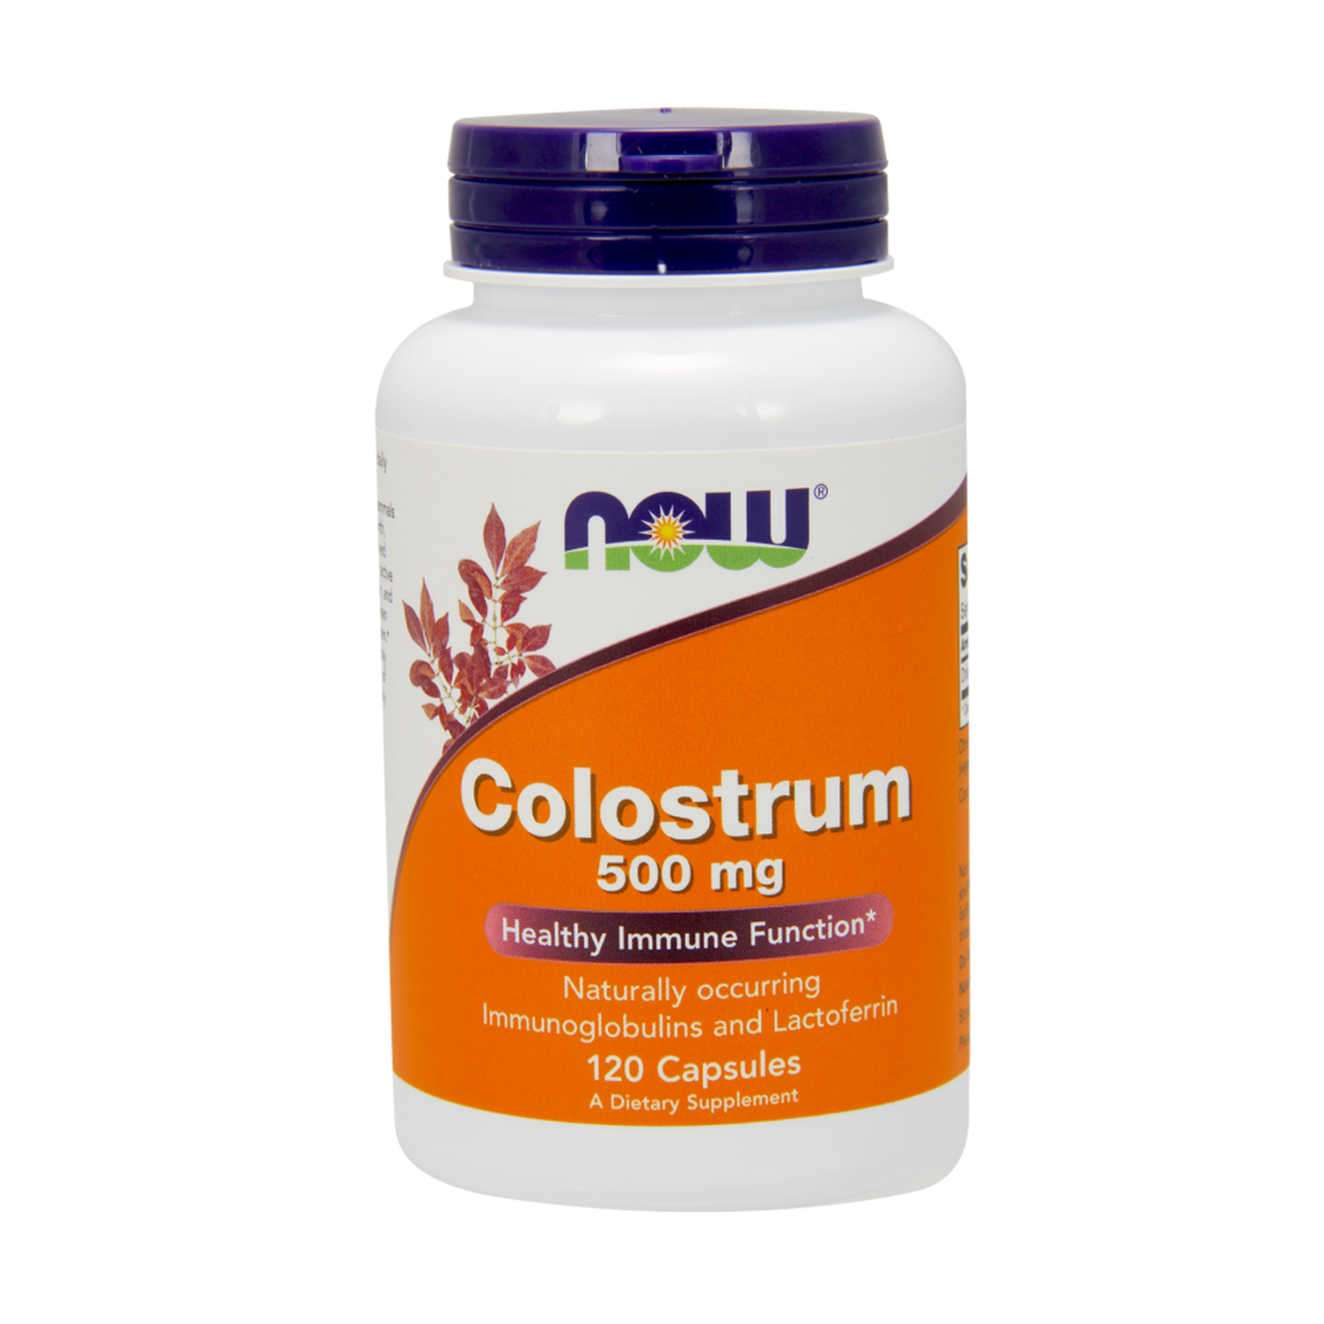 COLOSTRUM 500mg - 120 veg caps